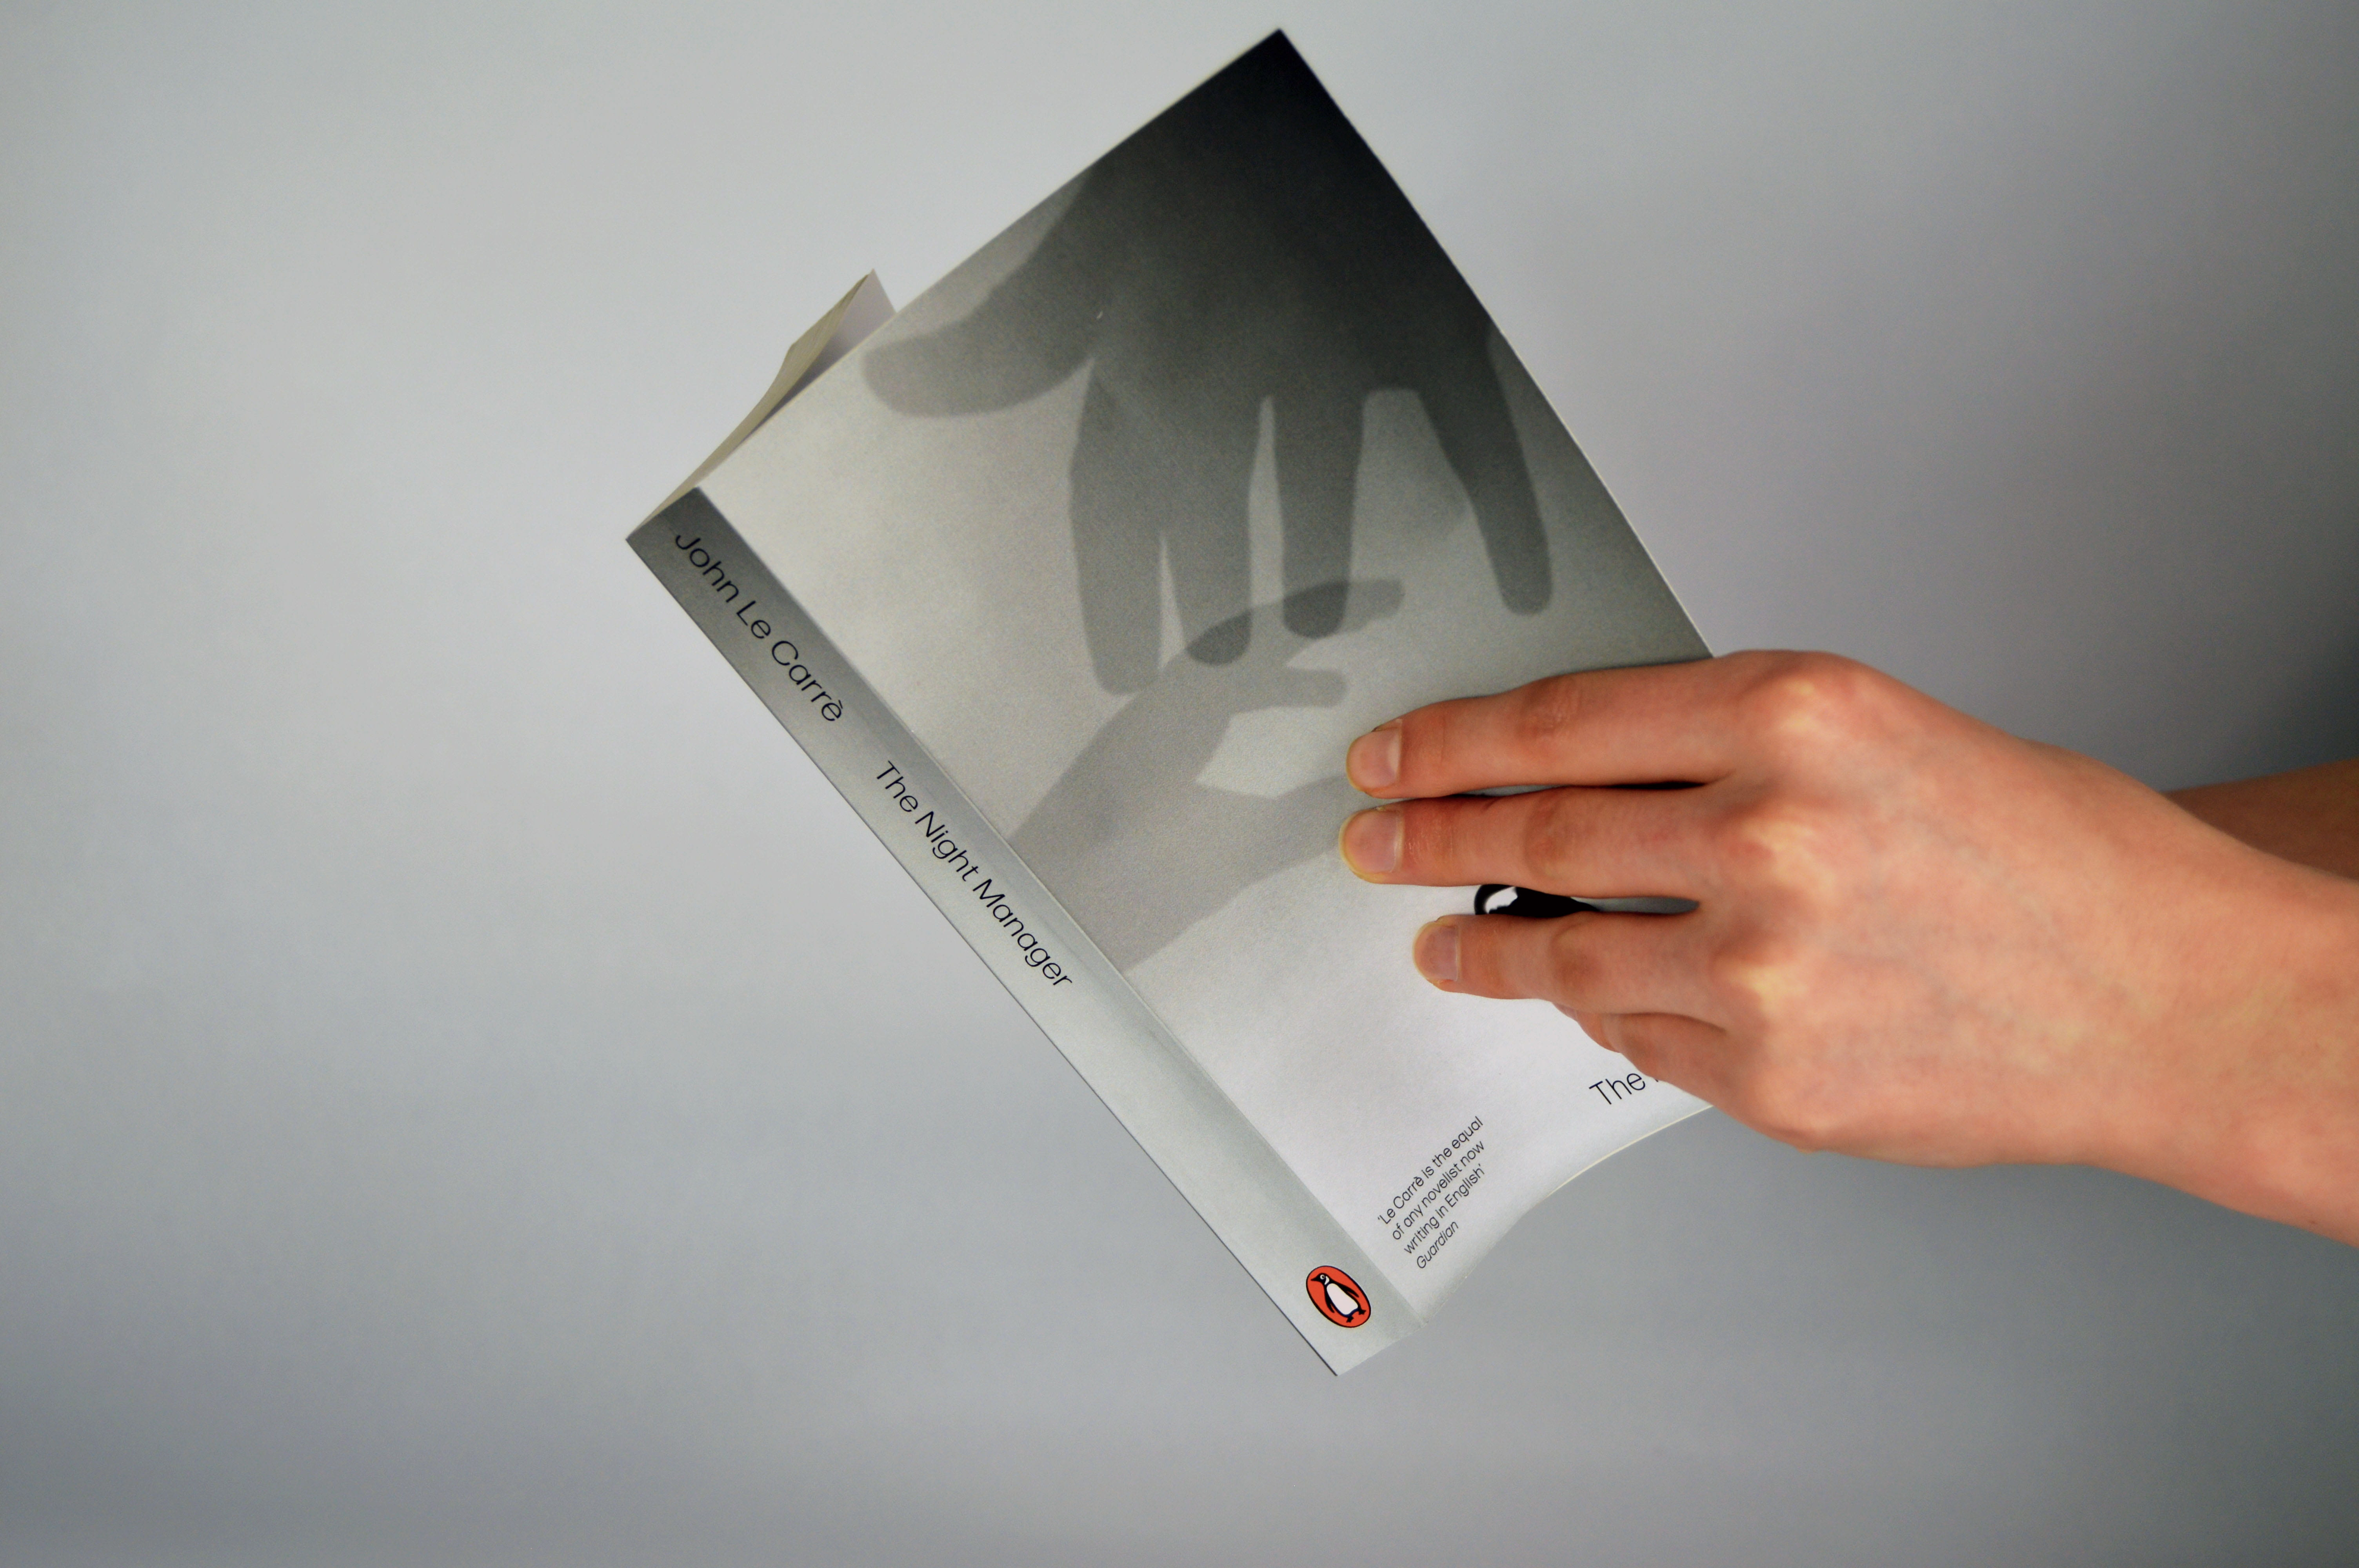 Book with front and spine visivle depicting the artwork of 2 hands reaching for the receptionists bell, and a spine matching the colour of the front cover background.